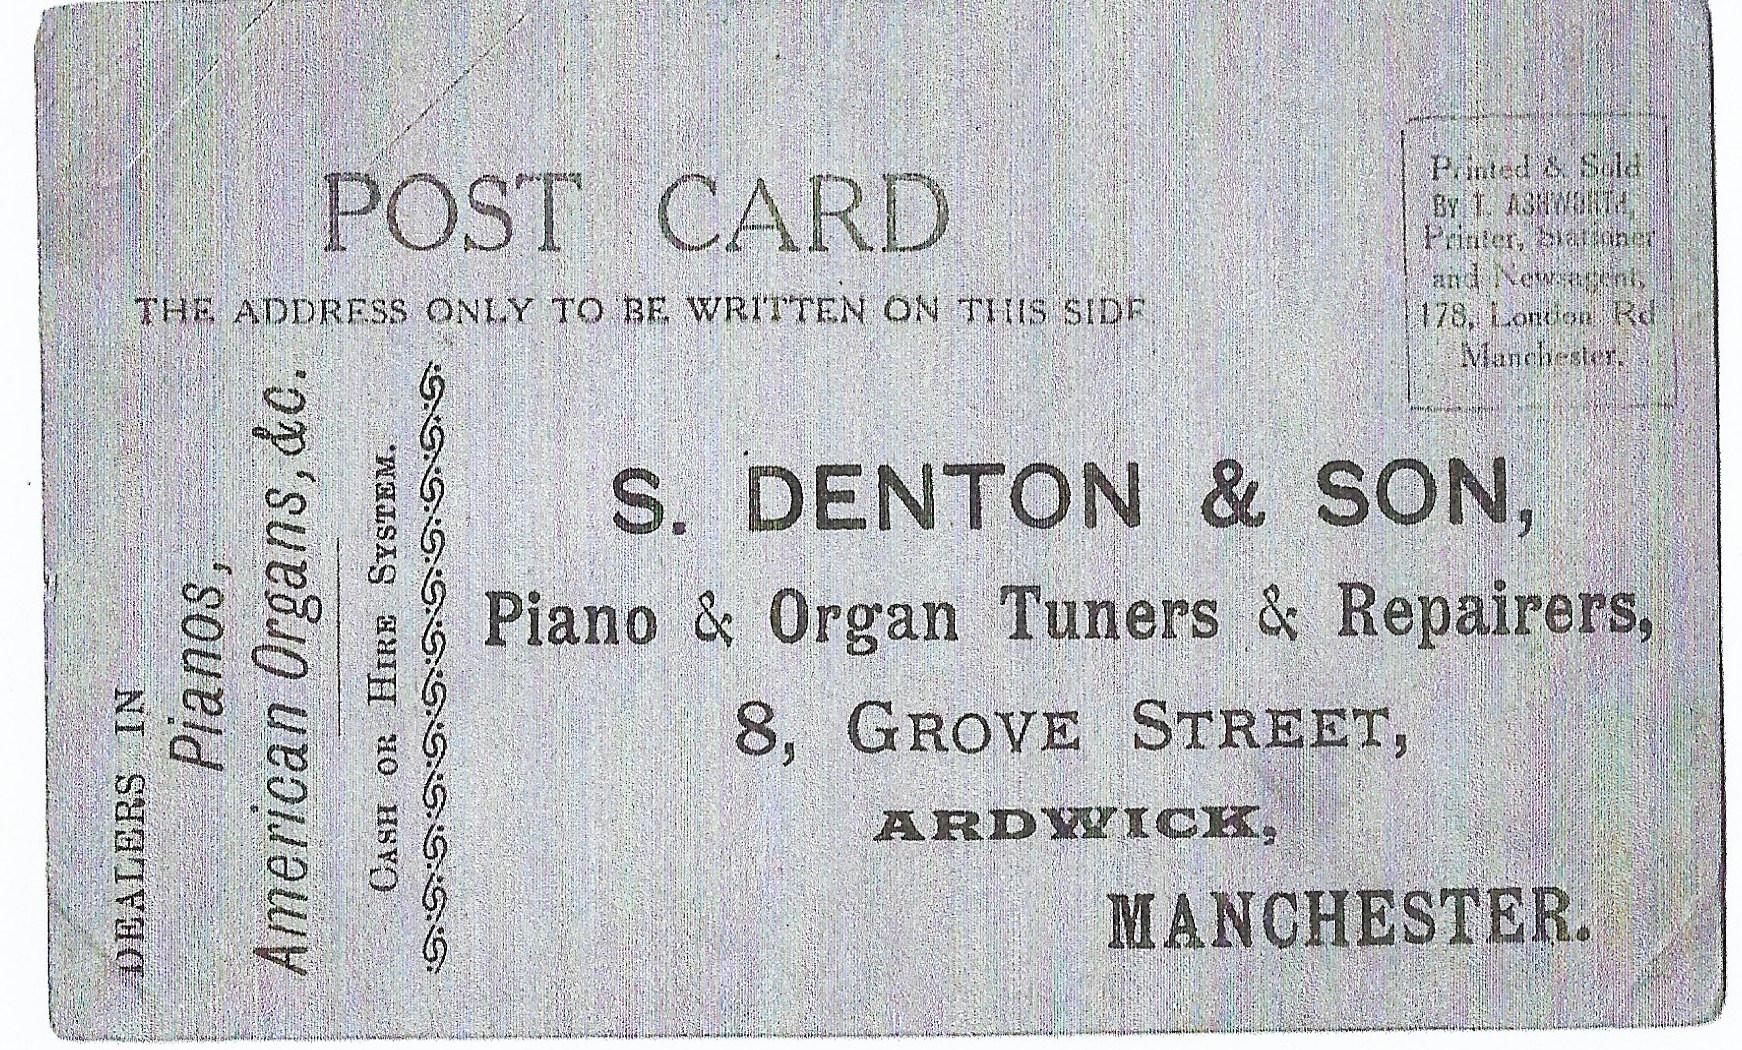 Samuel denton's business card